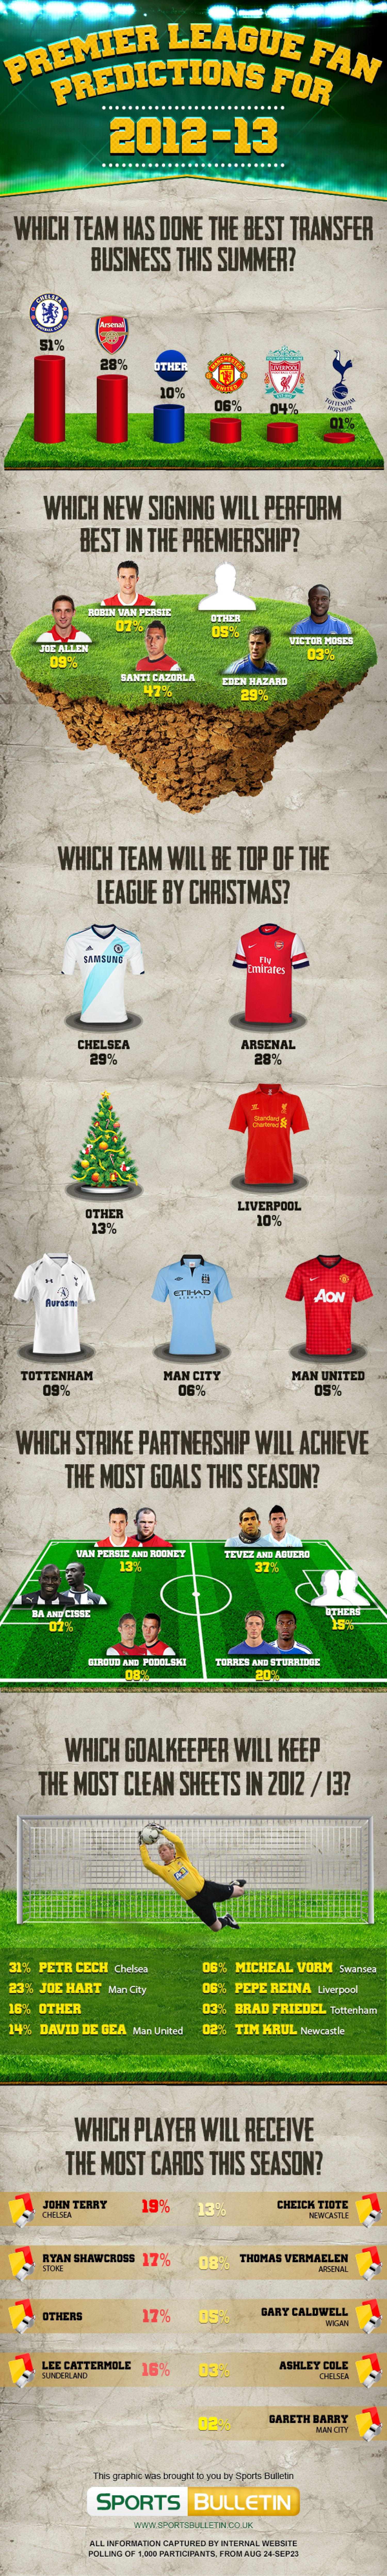 Premier League Fan Predictions 2012/13 Infographic